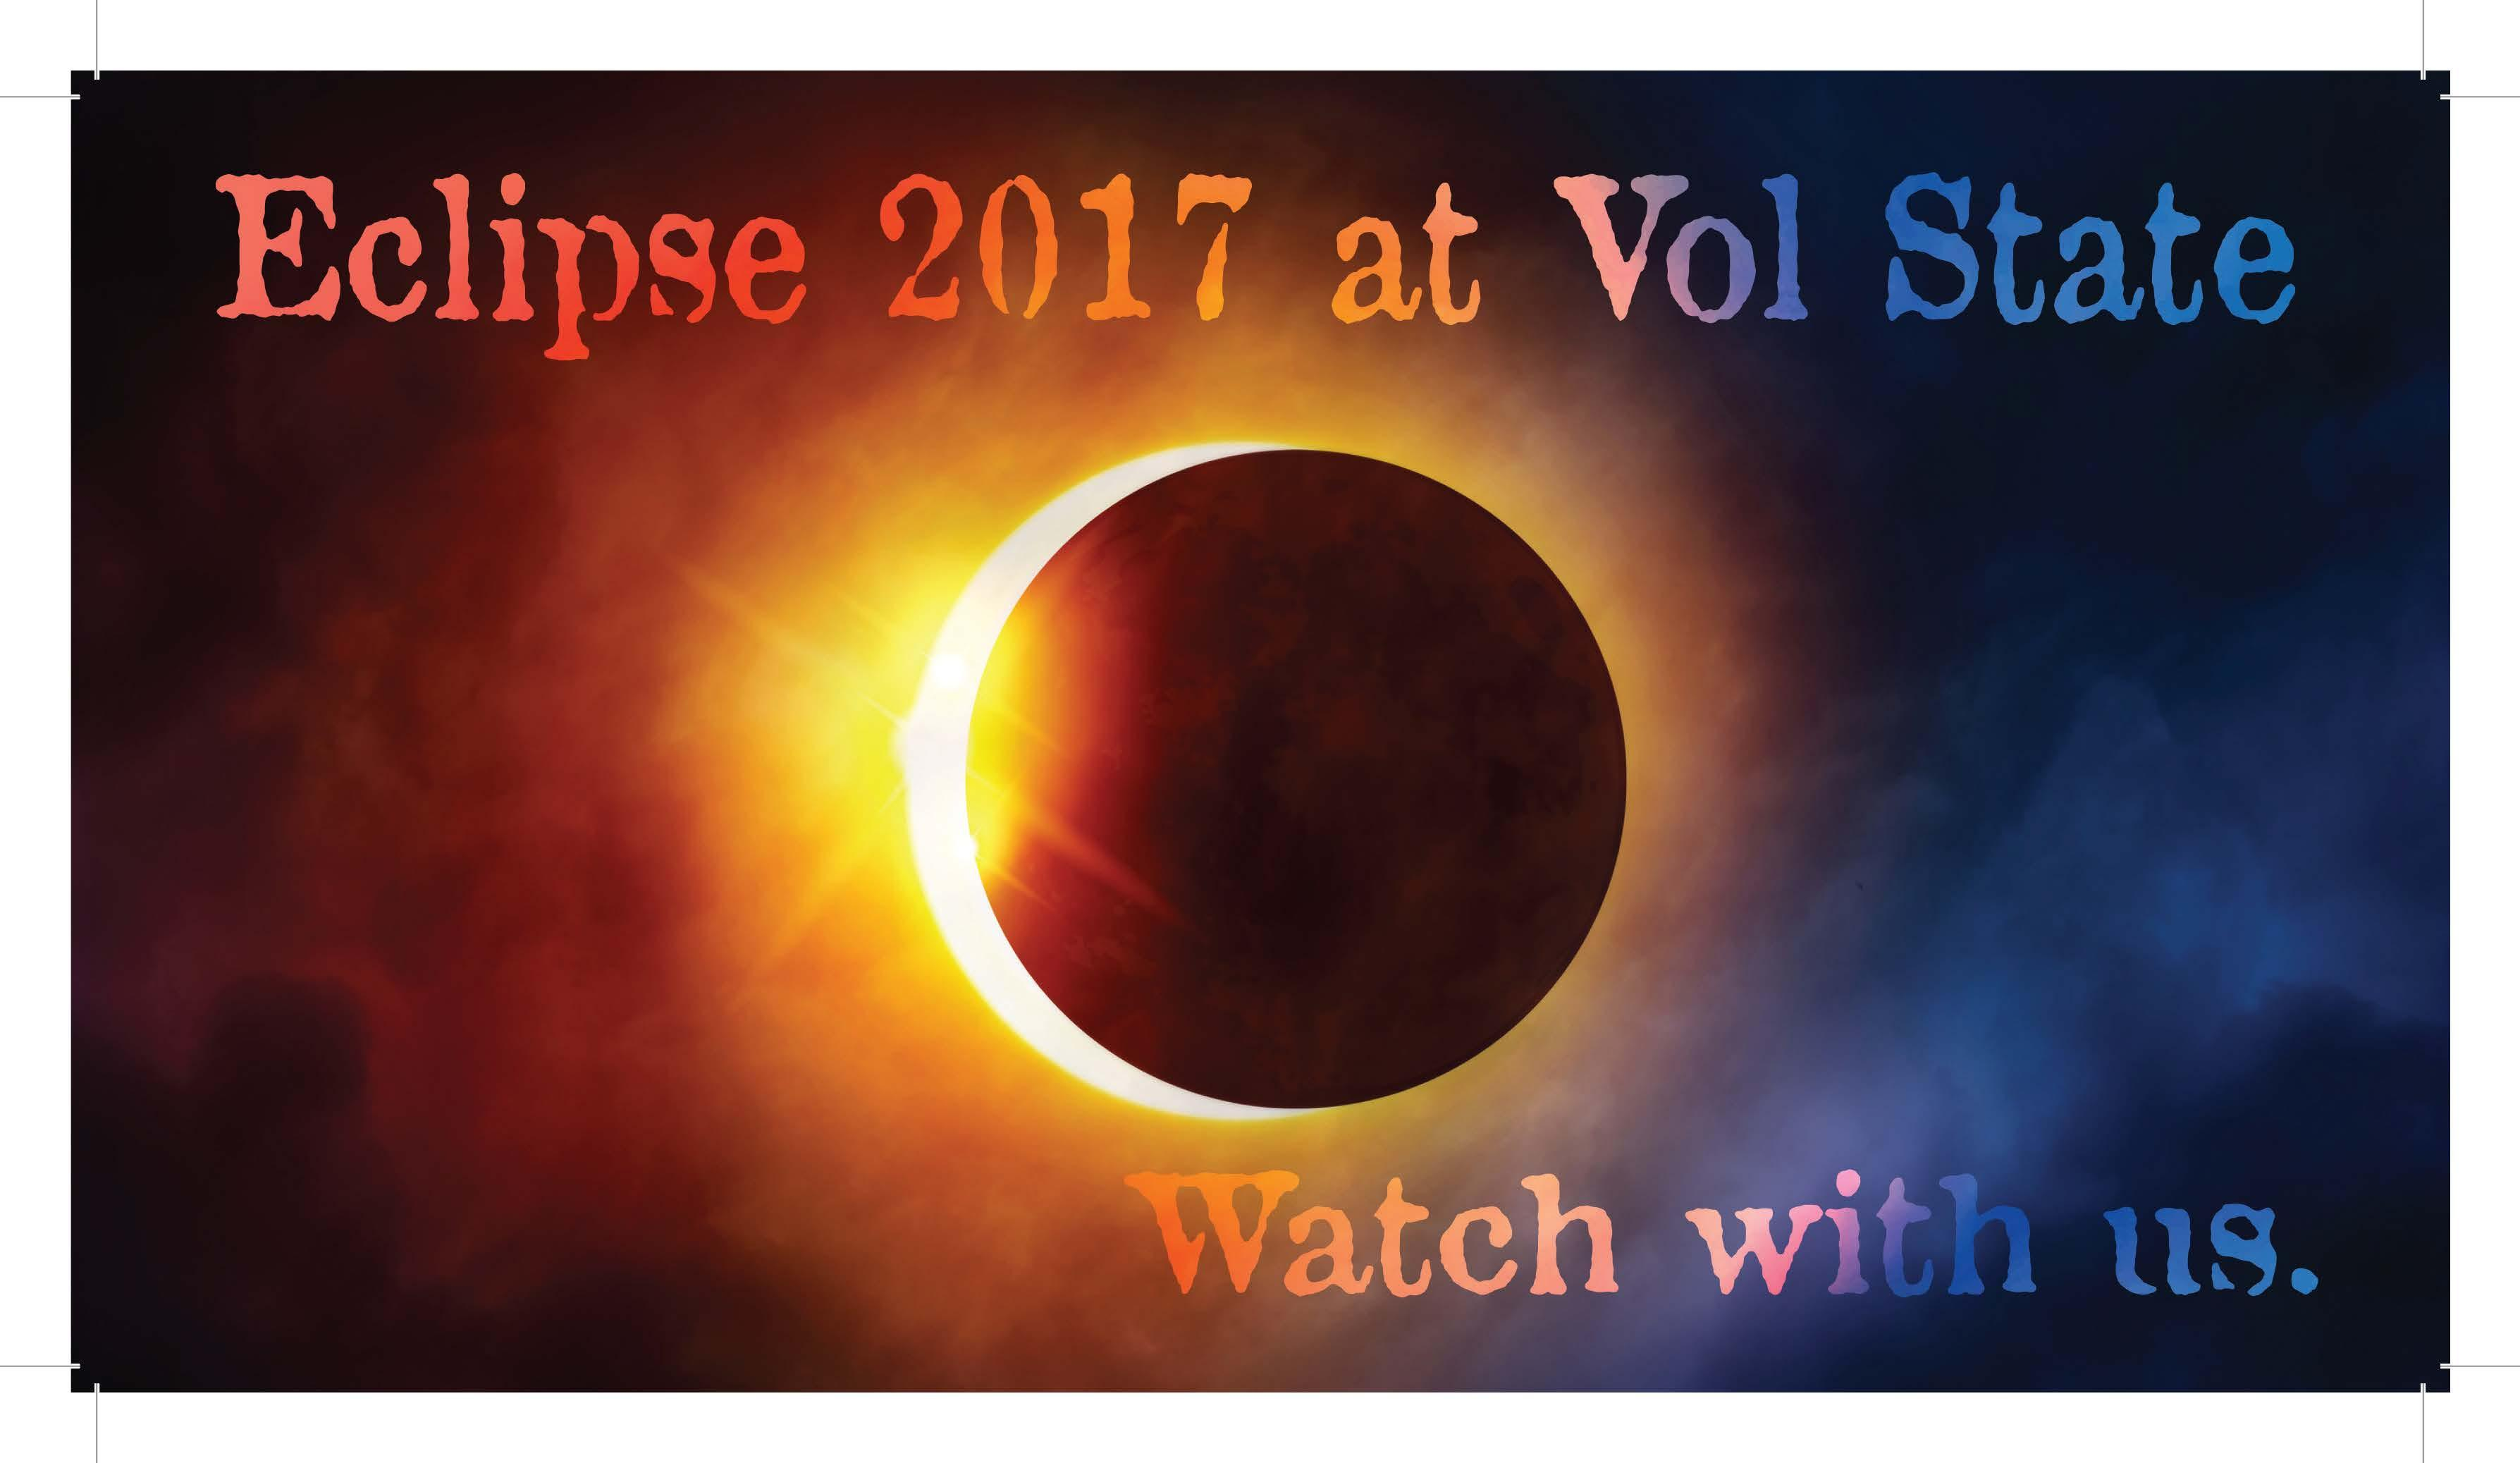 Eclipse 2017: Total Eclipse Watching at Vol State in Gallatin, TN